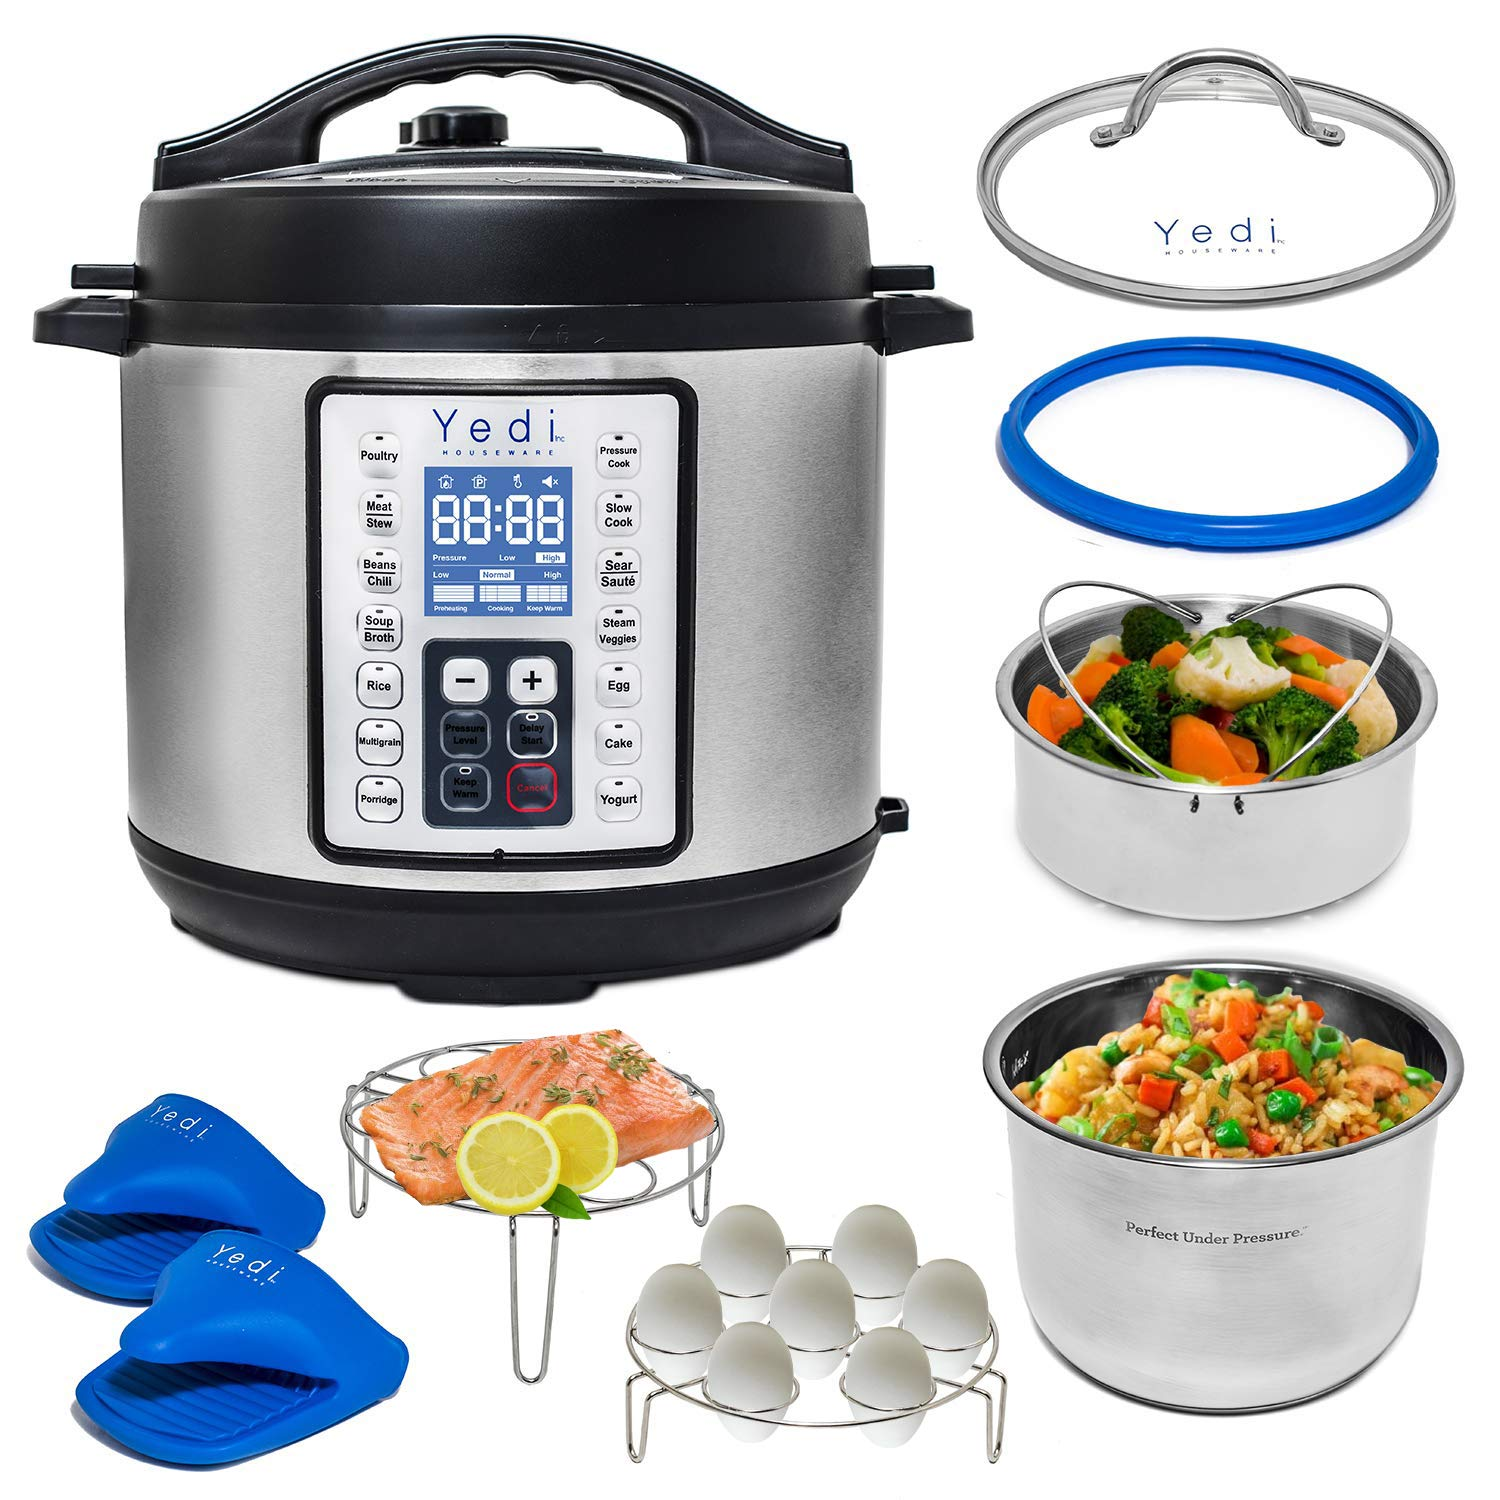 Yedi Houseware 9 in 1 Total Package Instant Programmable Pressure Cooker, 8 Quart, Stainless Steel by YEDI HOUSEWARE